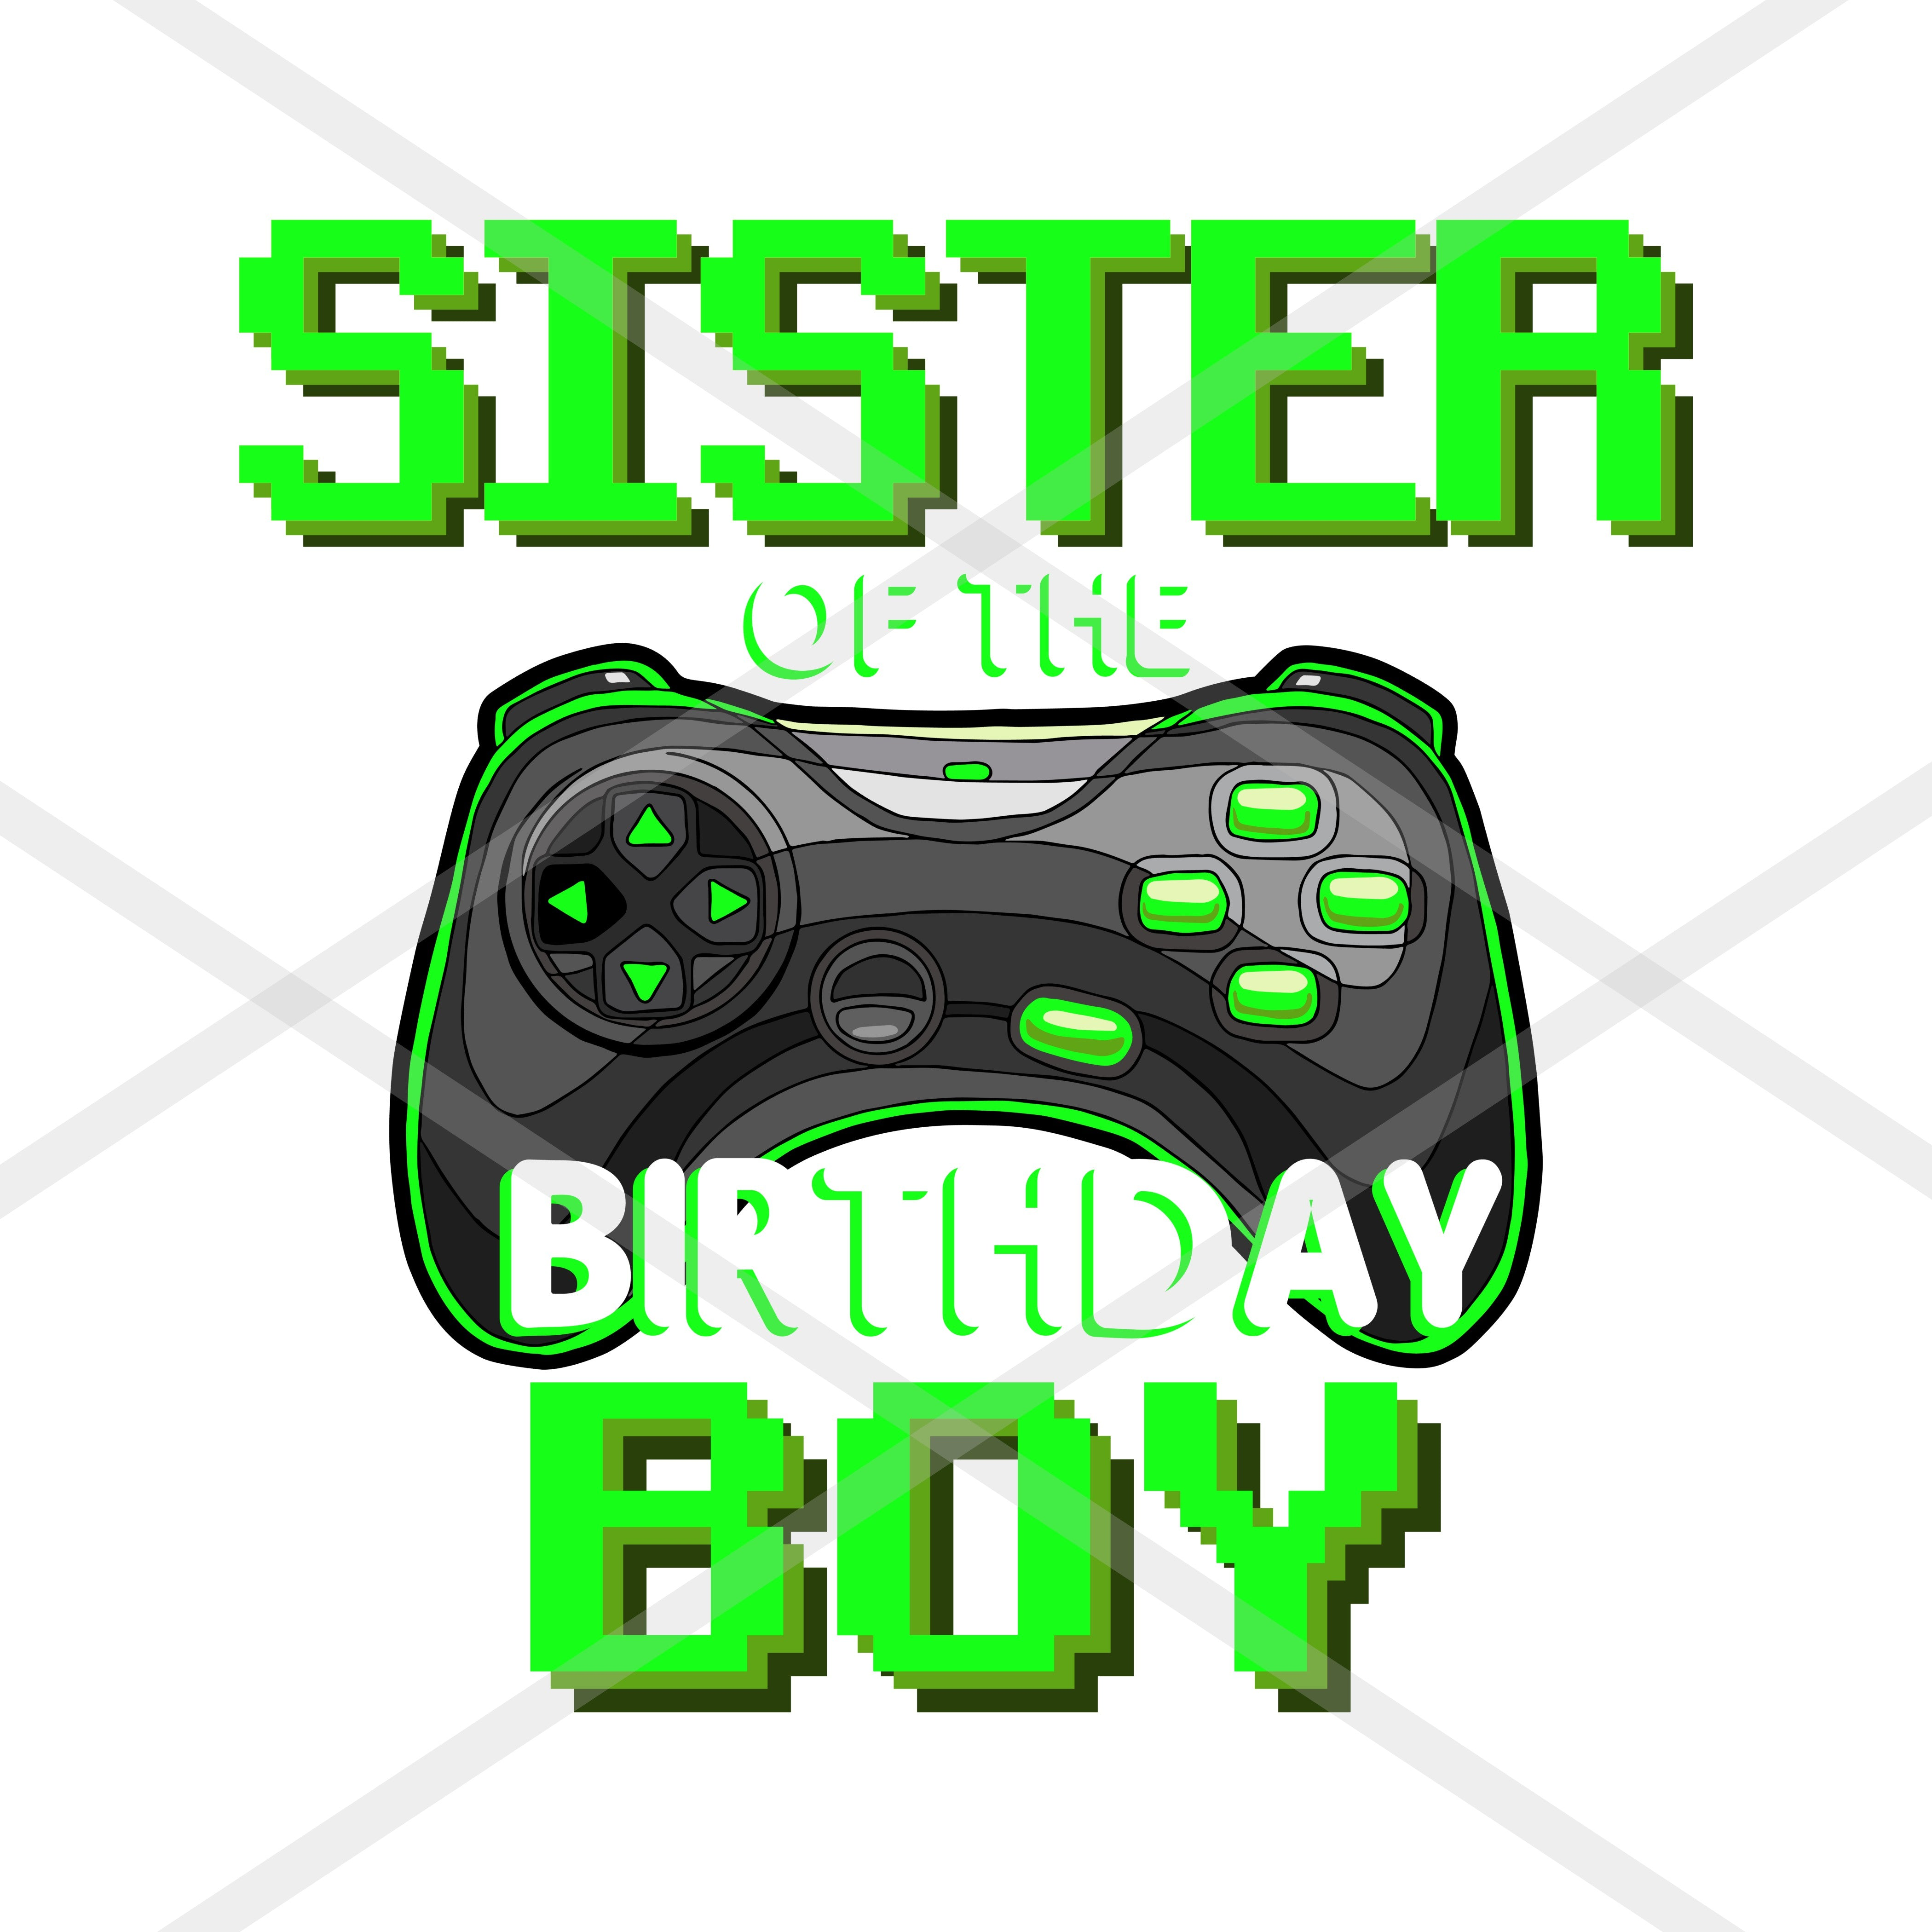 Birthday Gamer Sister svg Sister of the Birthday Boy svg Sister Gamer svg birthday game svg Video game Png eps svg Cricut Silhouette